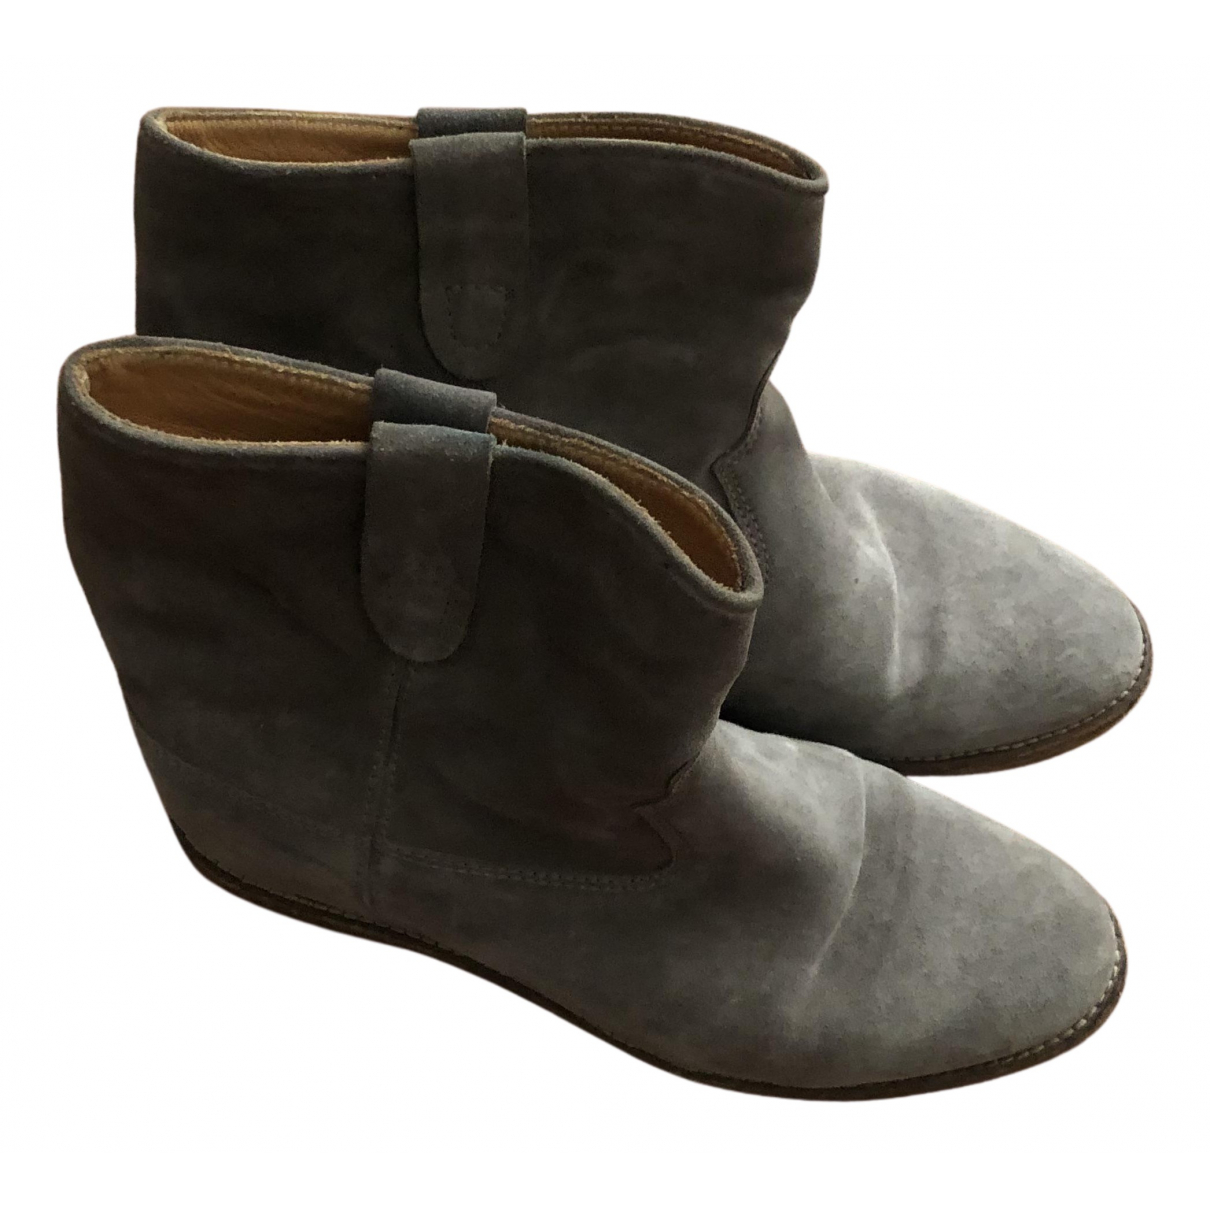 Isabel Marant N Beige Suede Ankle boots for Women 40 EU